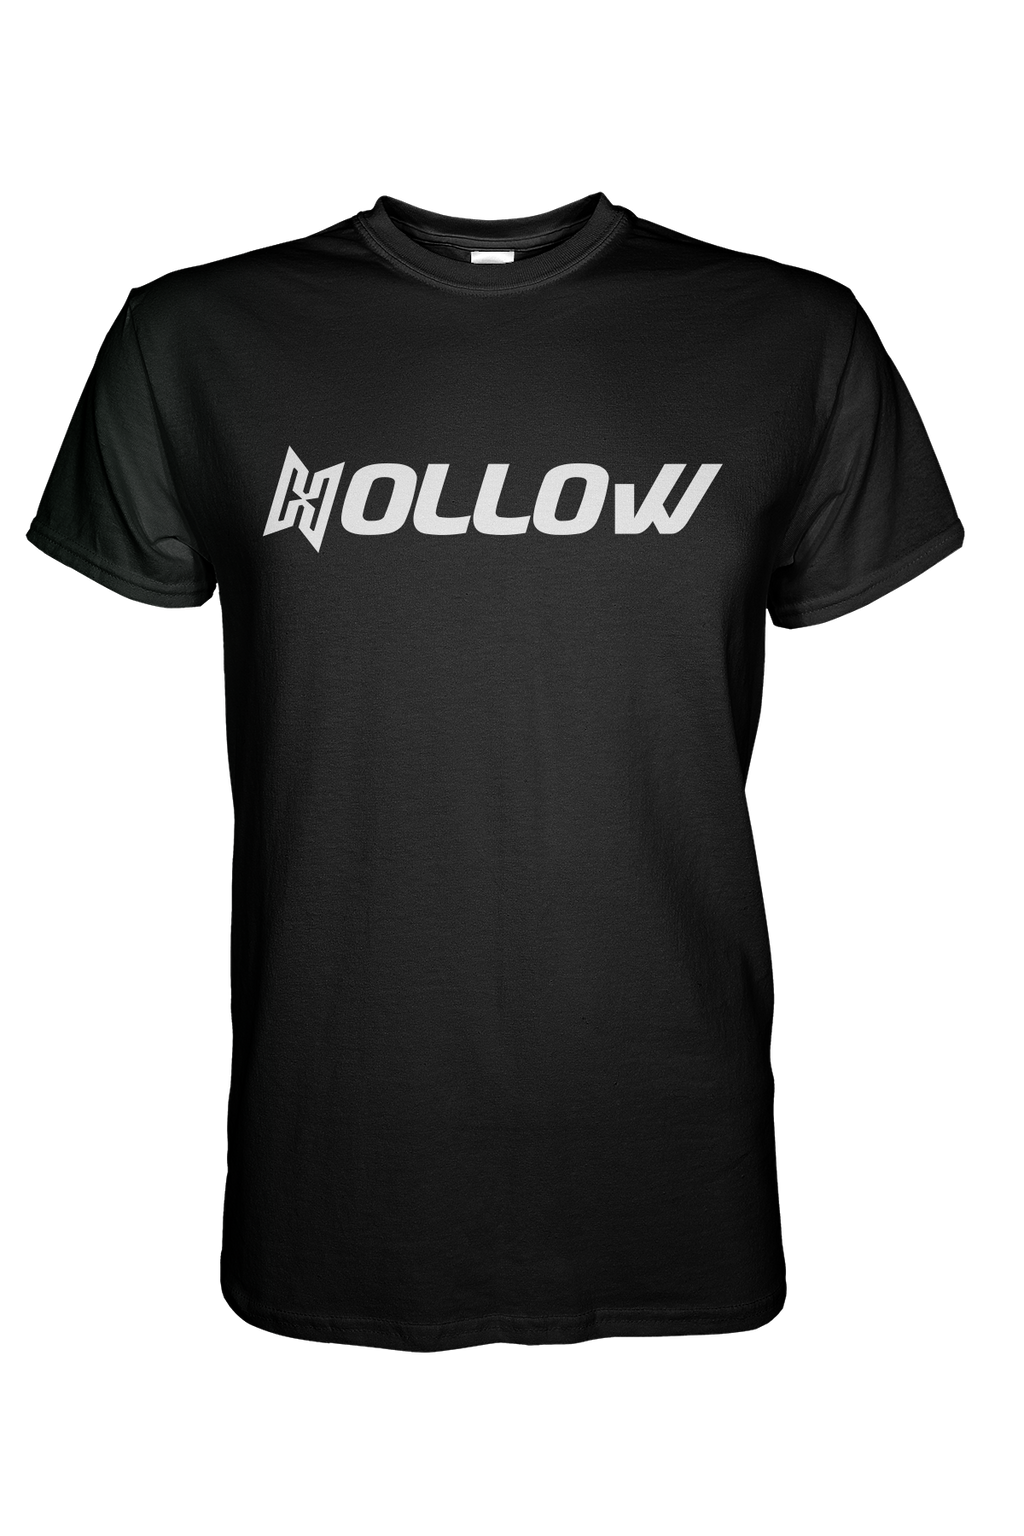 Hollow Text Shirt